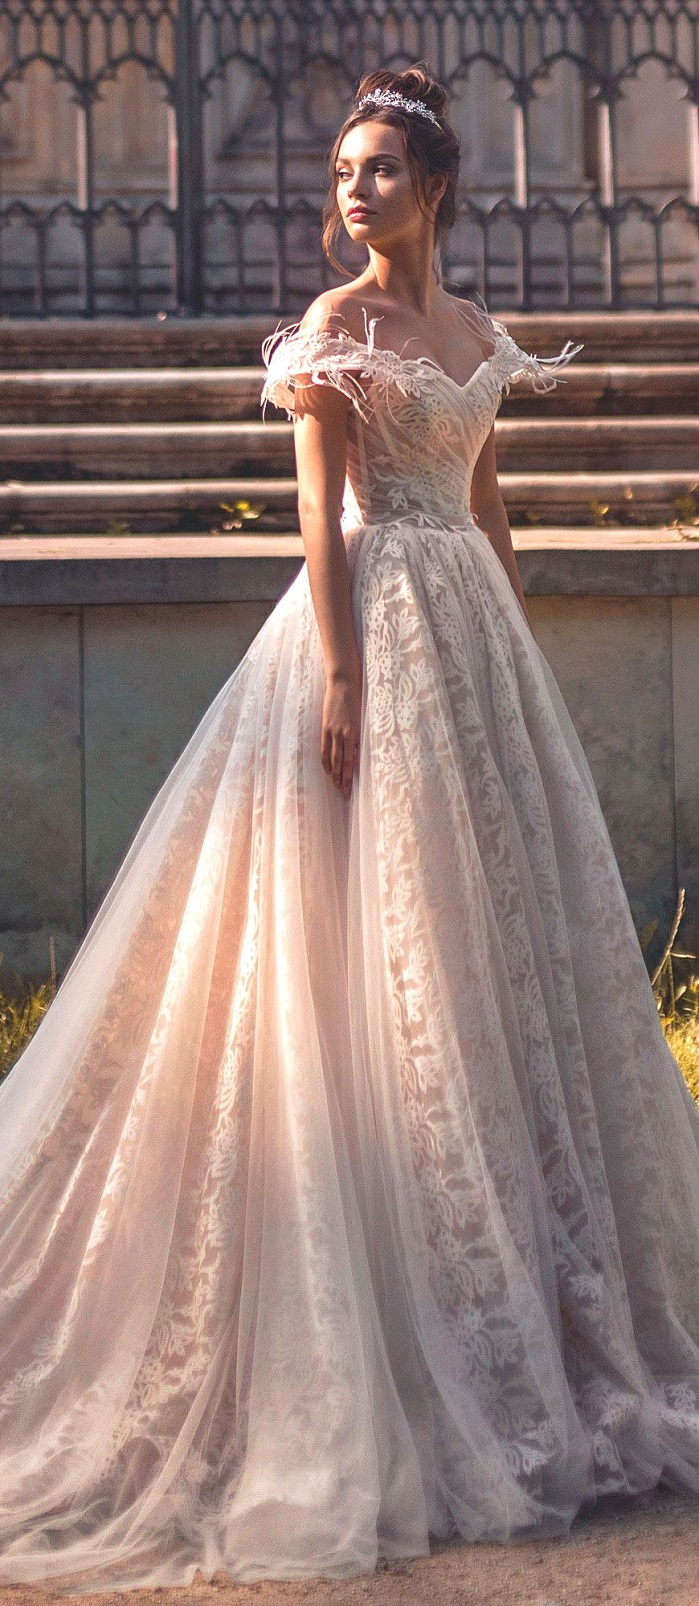 Off the shoulder Sweetheart neckline ball gown wedding dress chapel train Blammo biamo 2018 Wedding Dresses #weddingdress #weddingdresses #wedding #weddings #bridedress #bride